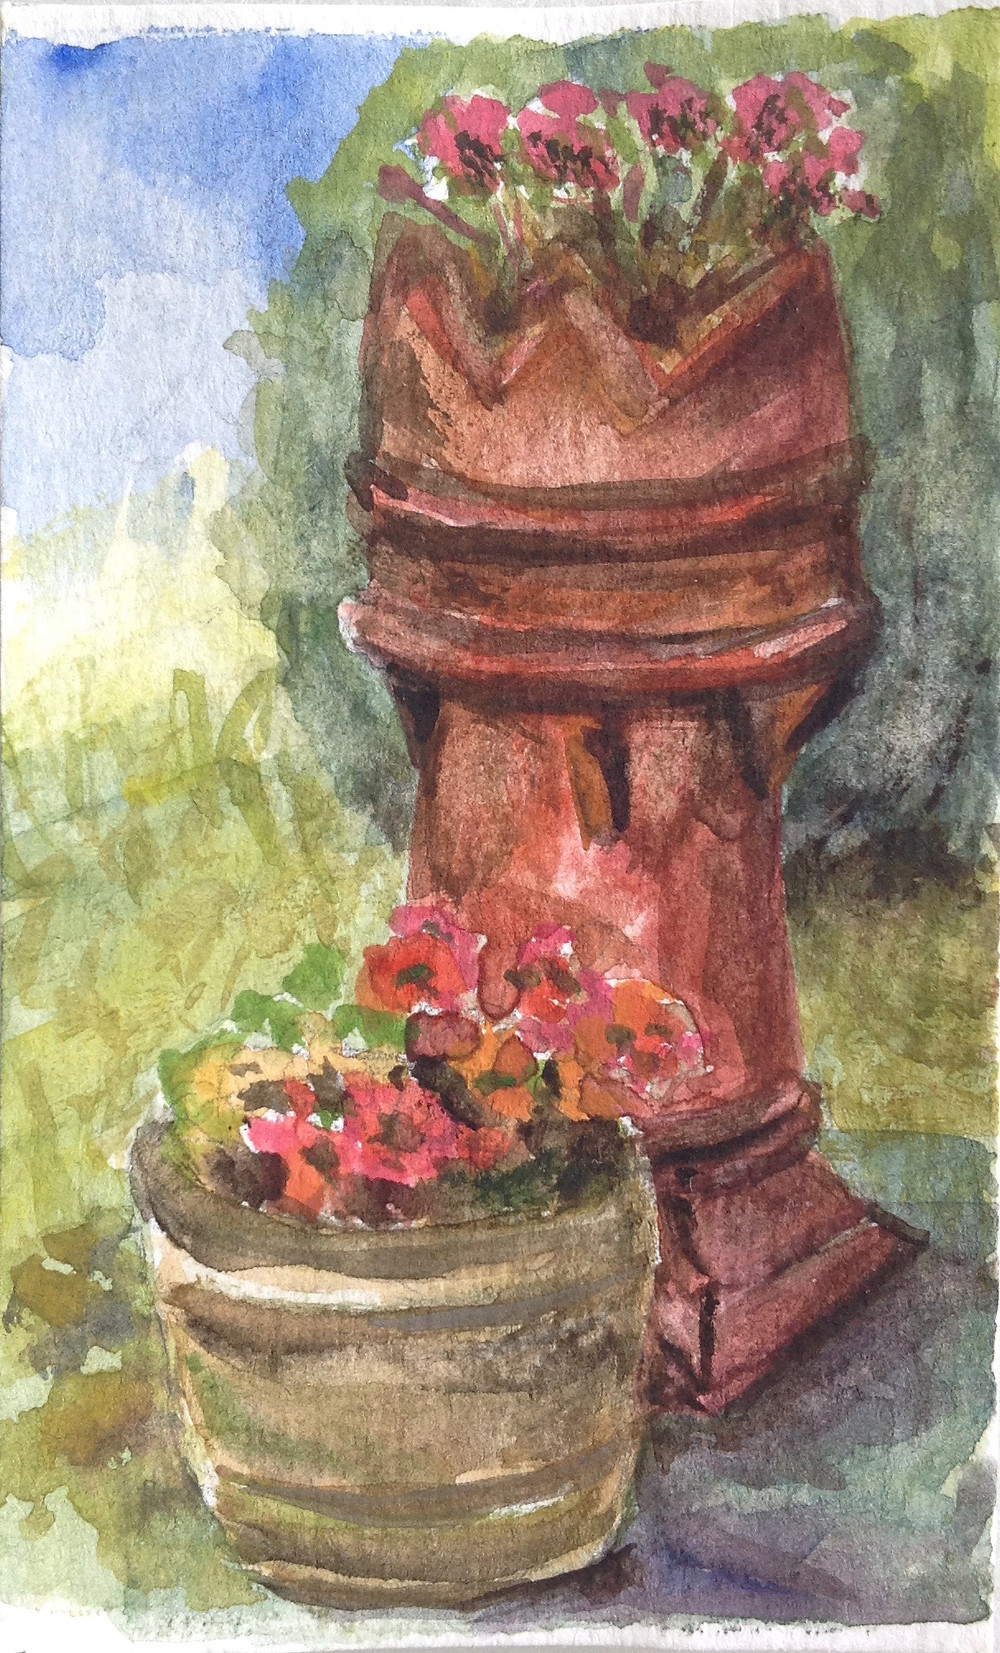 chimney pot garden feature mini watercolour painting